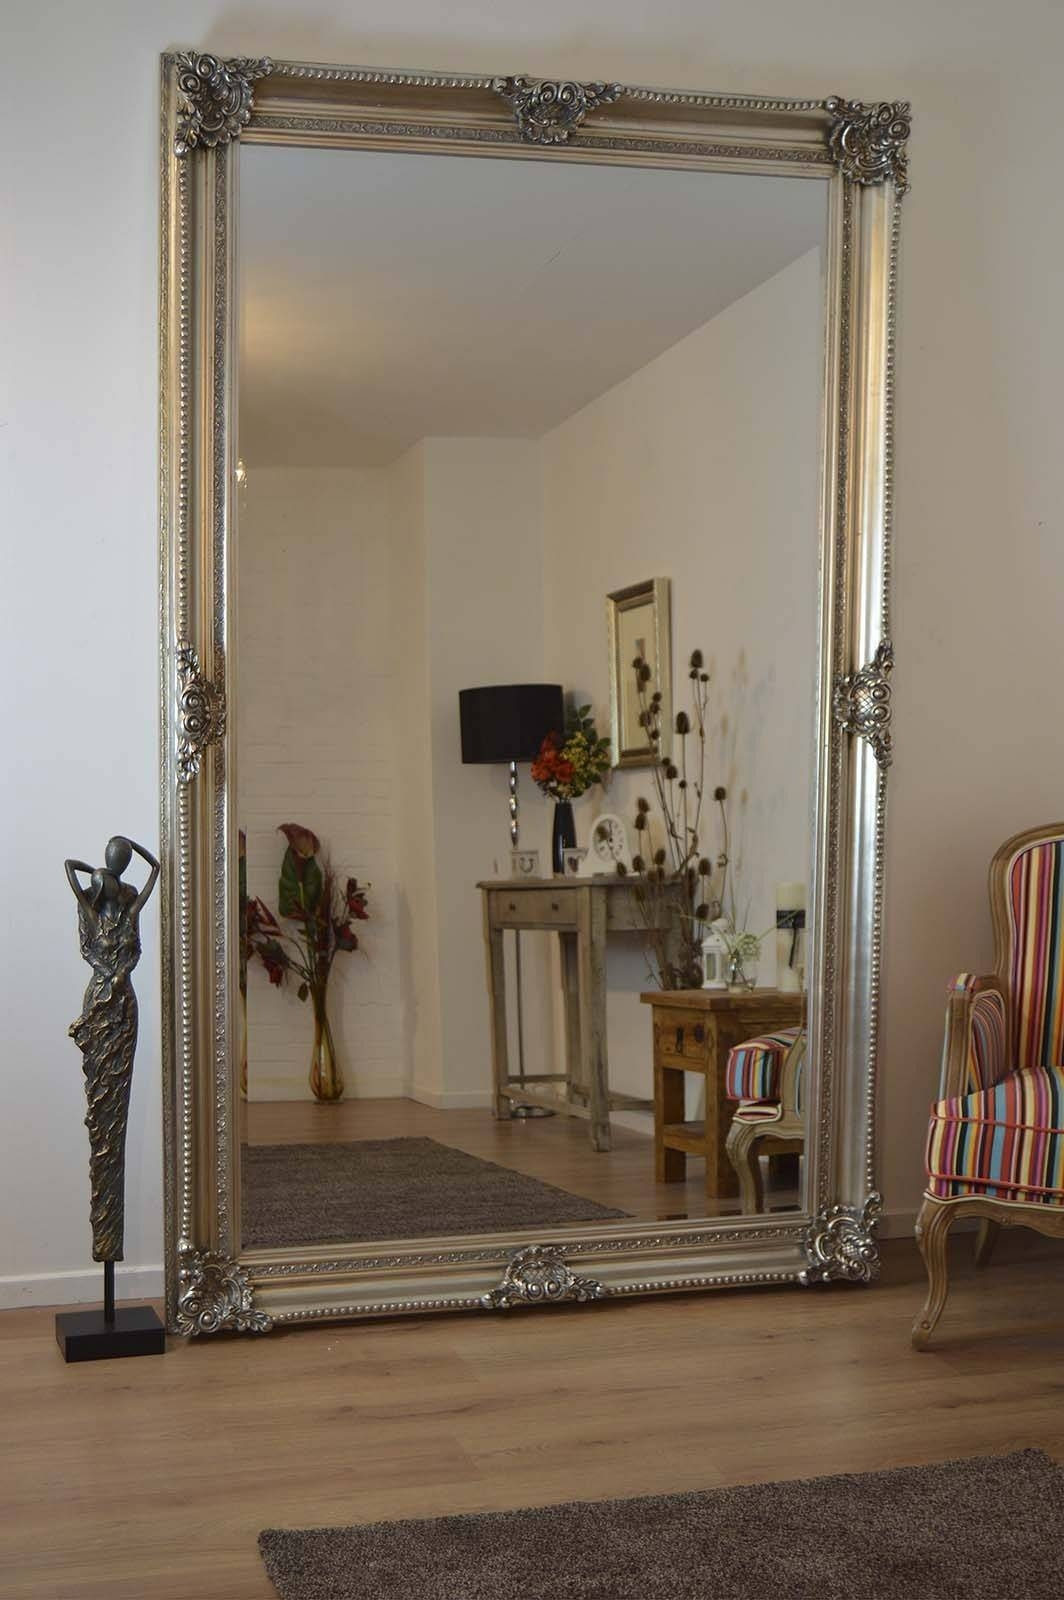 Antique Oval Wall Mirrors Antique Oak Wall Mirrors - Classic regarding Antiqued Wall Mirrors (Image 5 of 25)